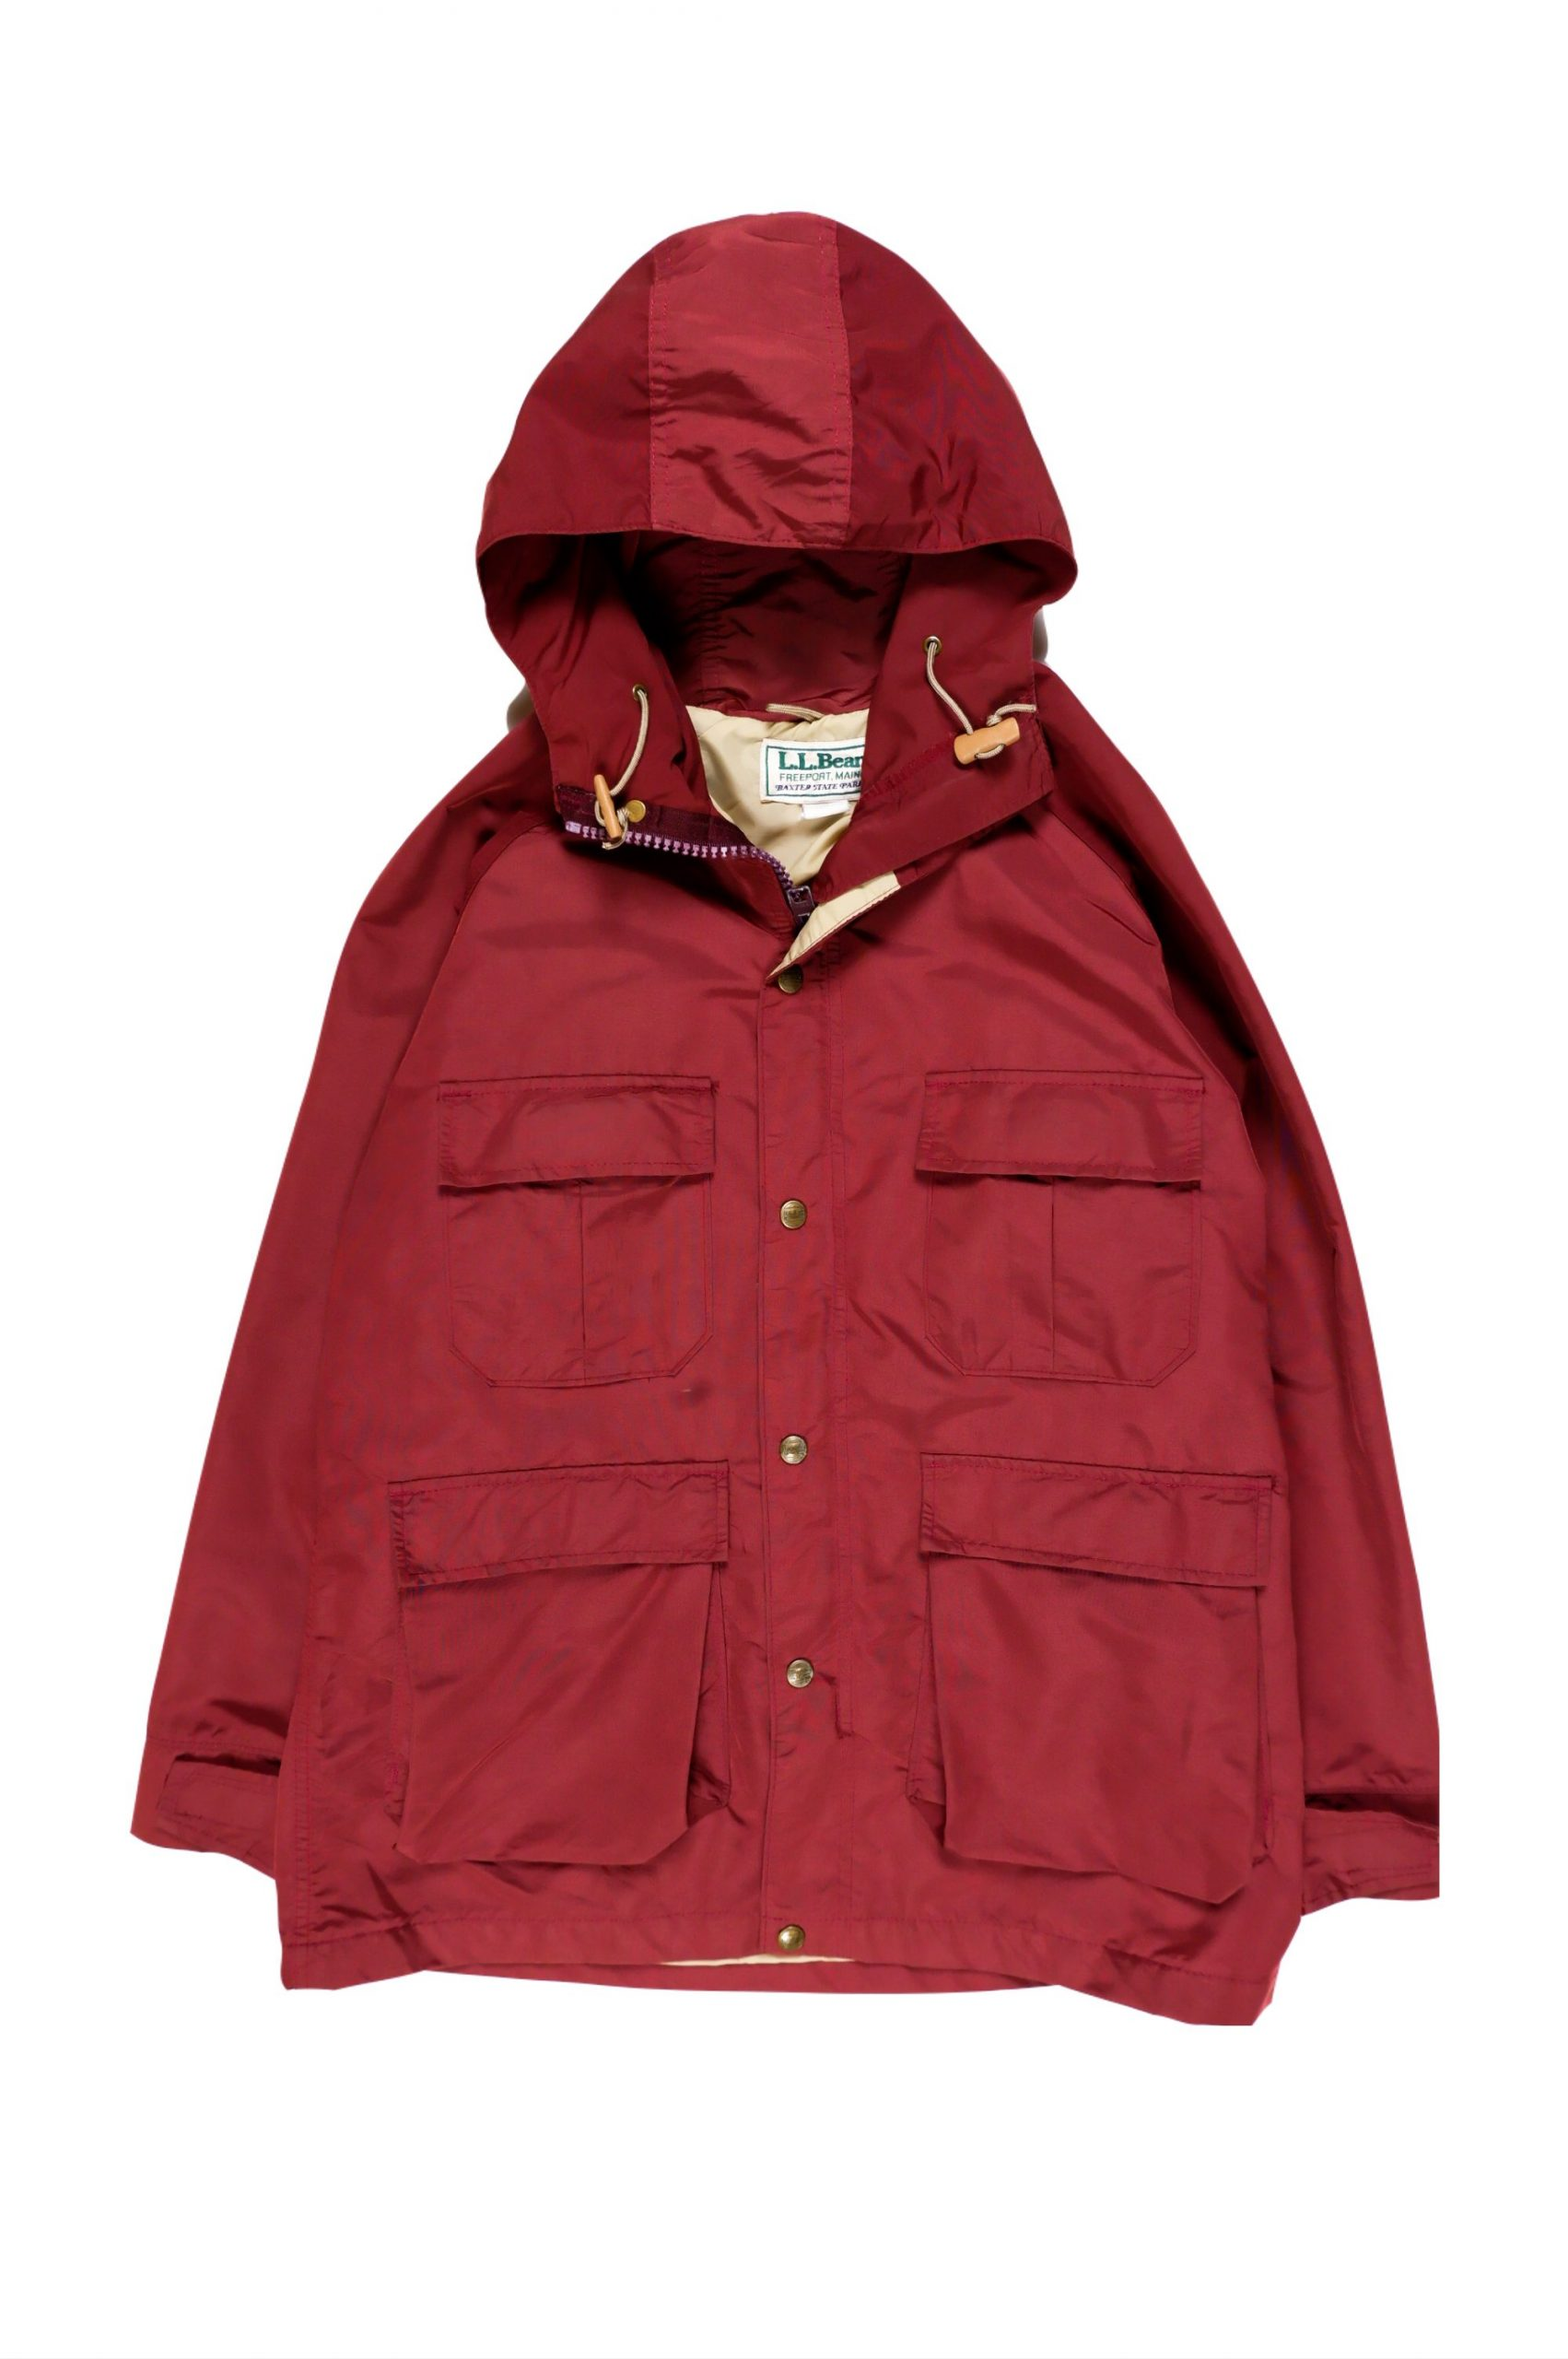 L.L Bean Vintage Outdoor Parka_MADE IN USA